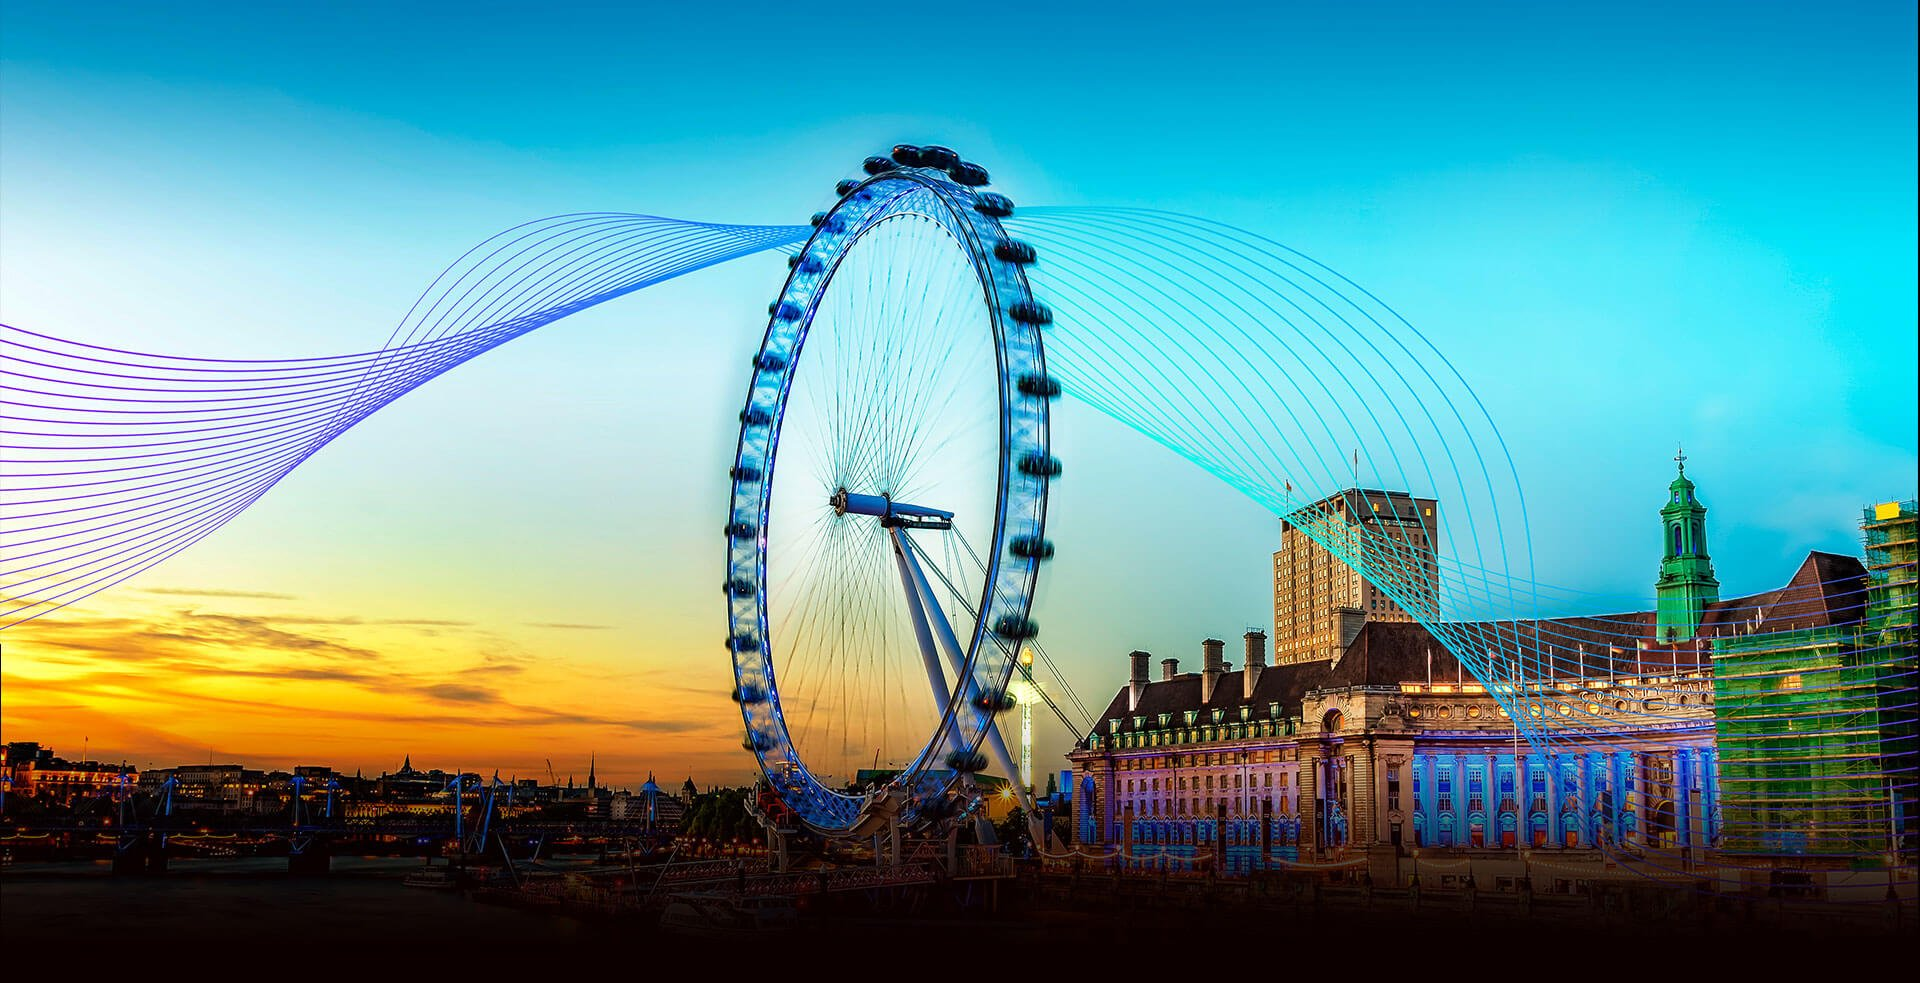 alphagamma 46 best hr conferences to attend in 2018 unleash conference & expo london entrepreneurship human resources